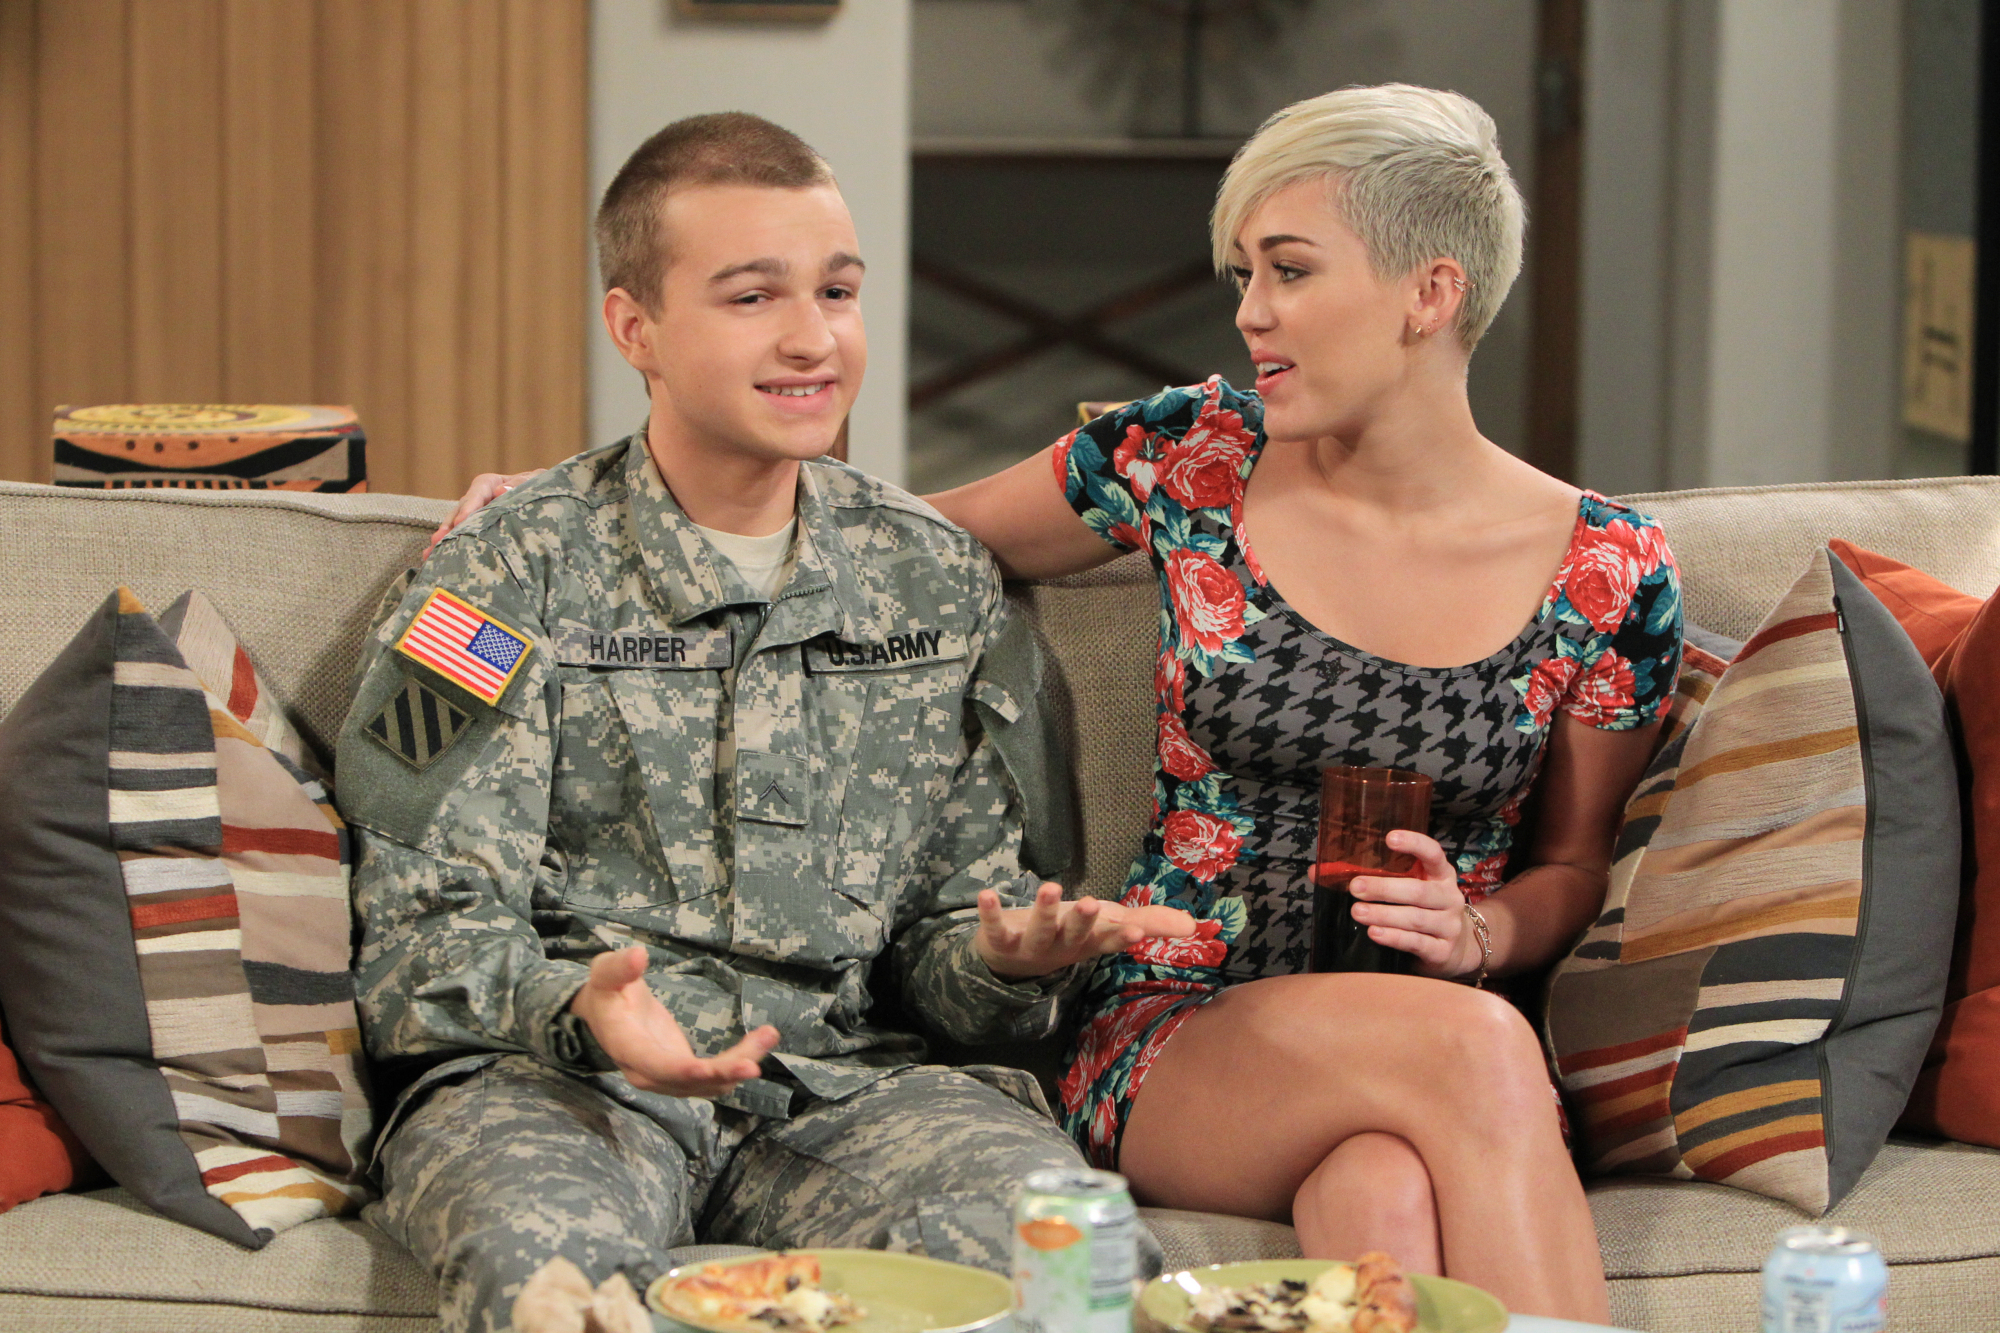 Image #: 19897367    'Avoid The Chinese Mustard' -- Jake (Angus T. Jones, left) and Missi (Miley Cyrus, right) plan a rendezv